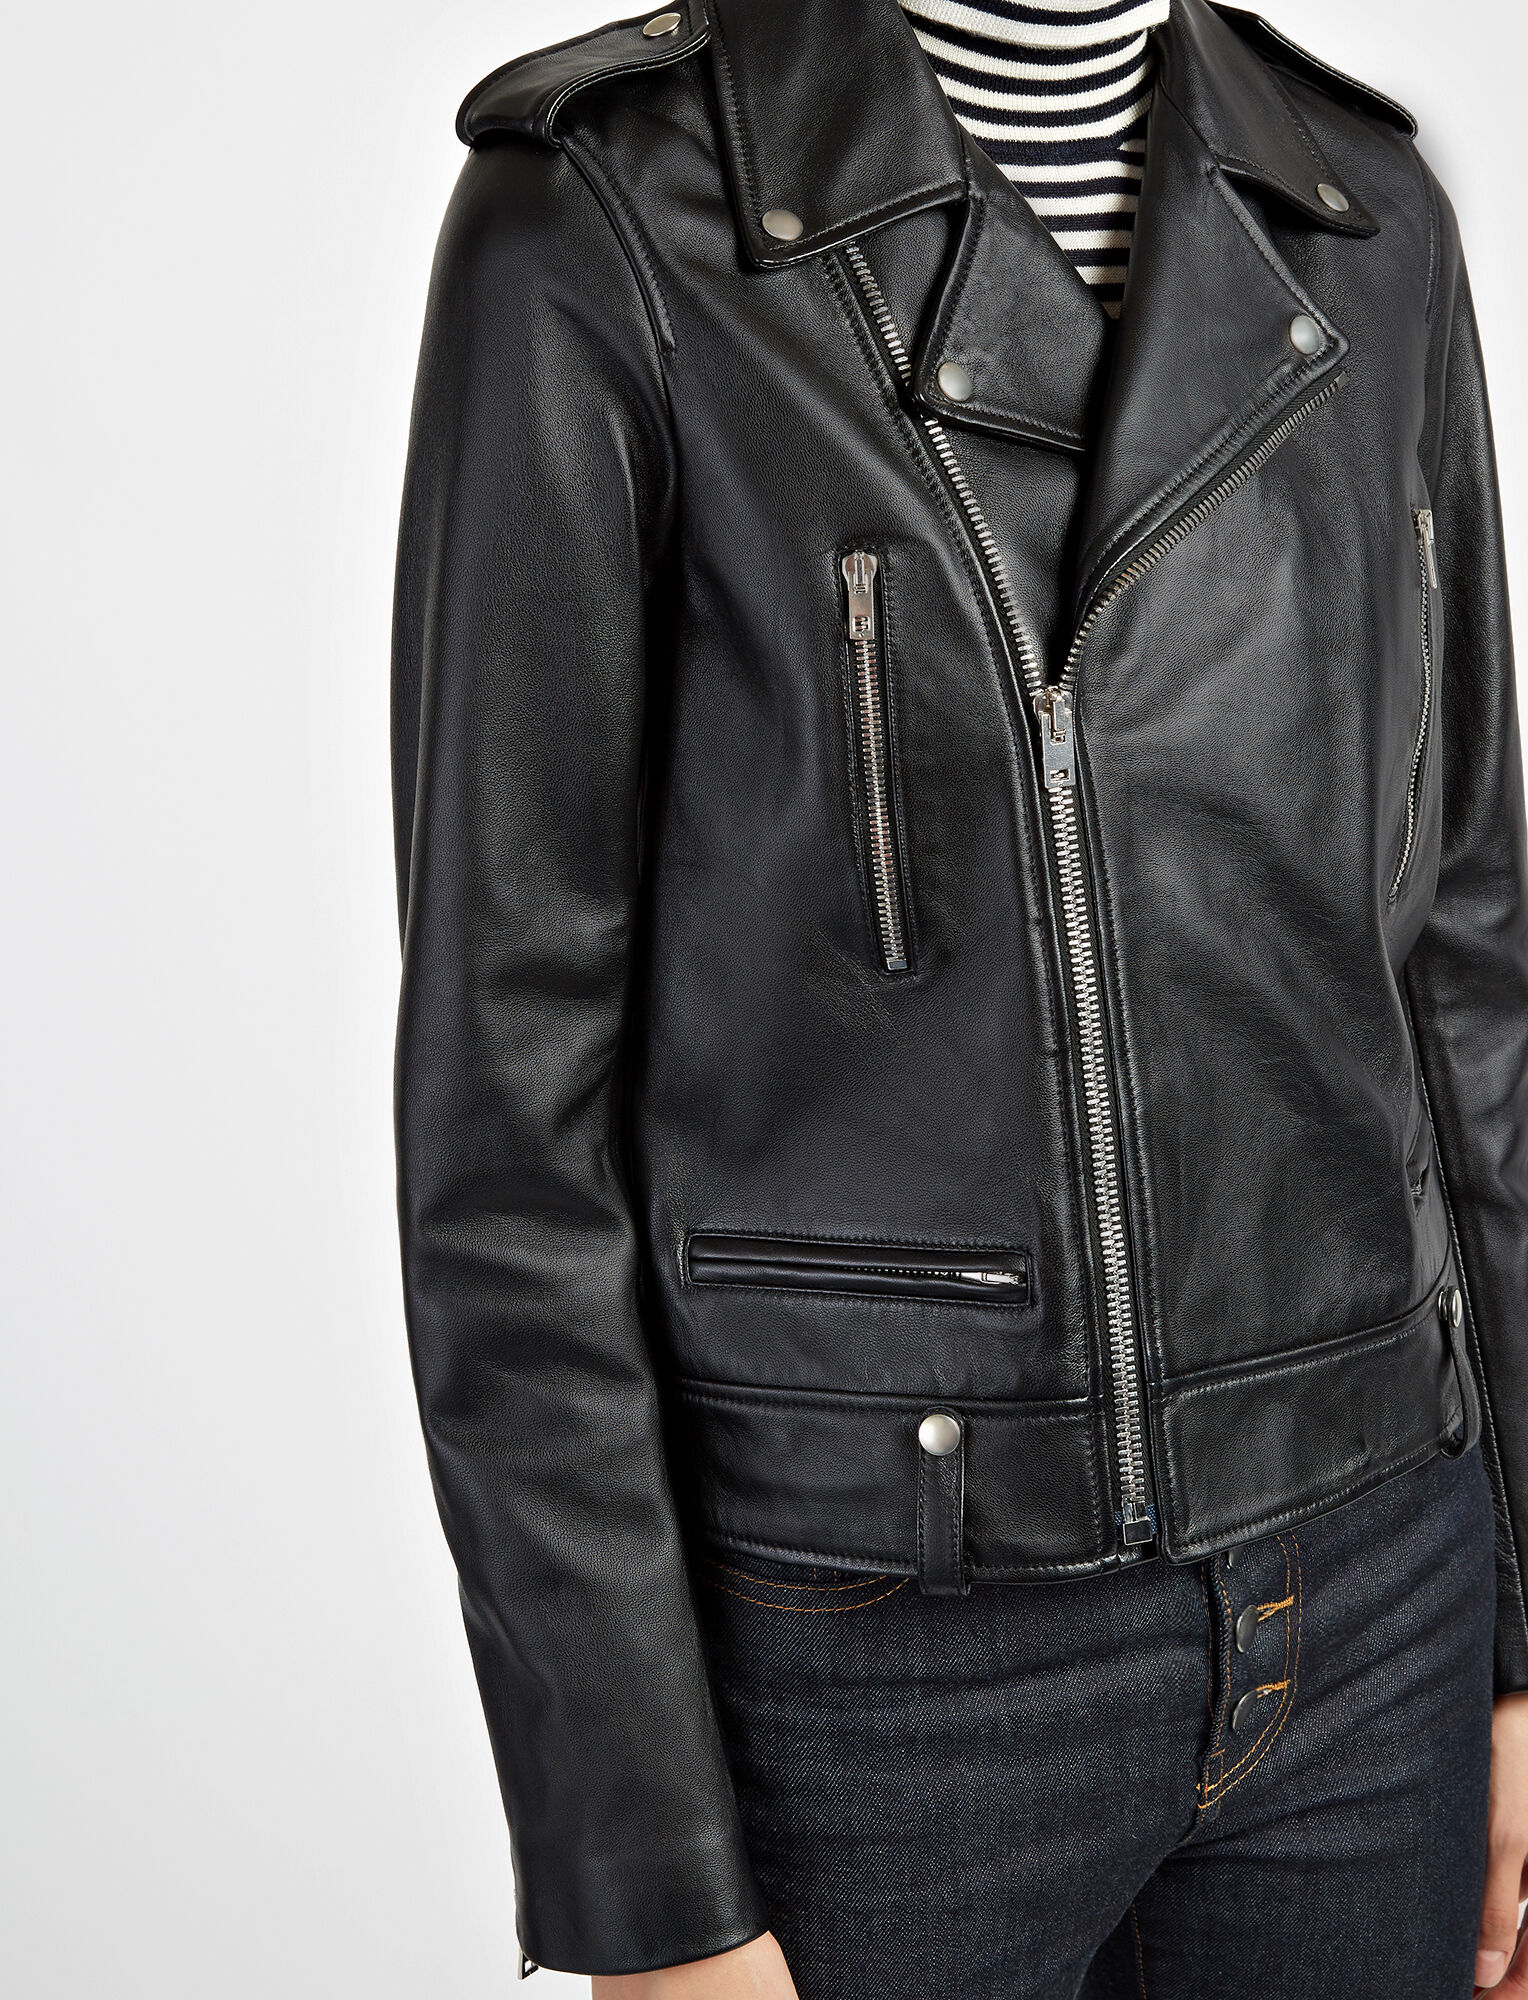 Joseph, Biker Leather Ryder Jacket, in BLACK